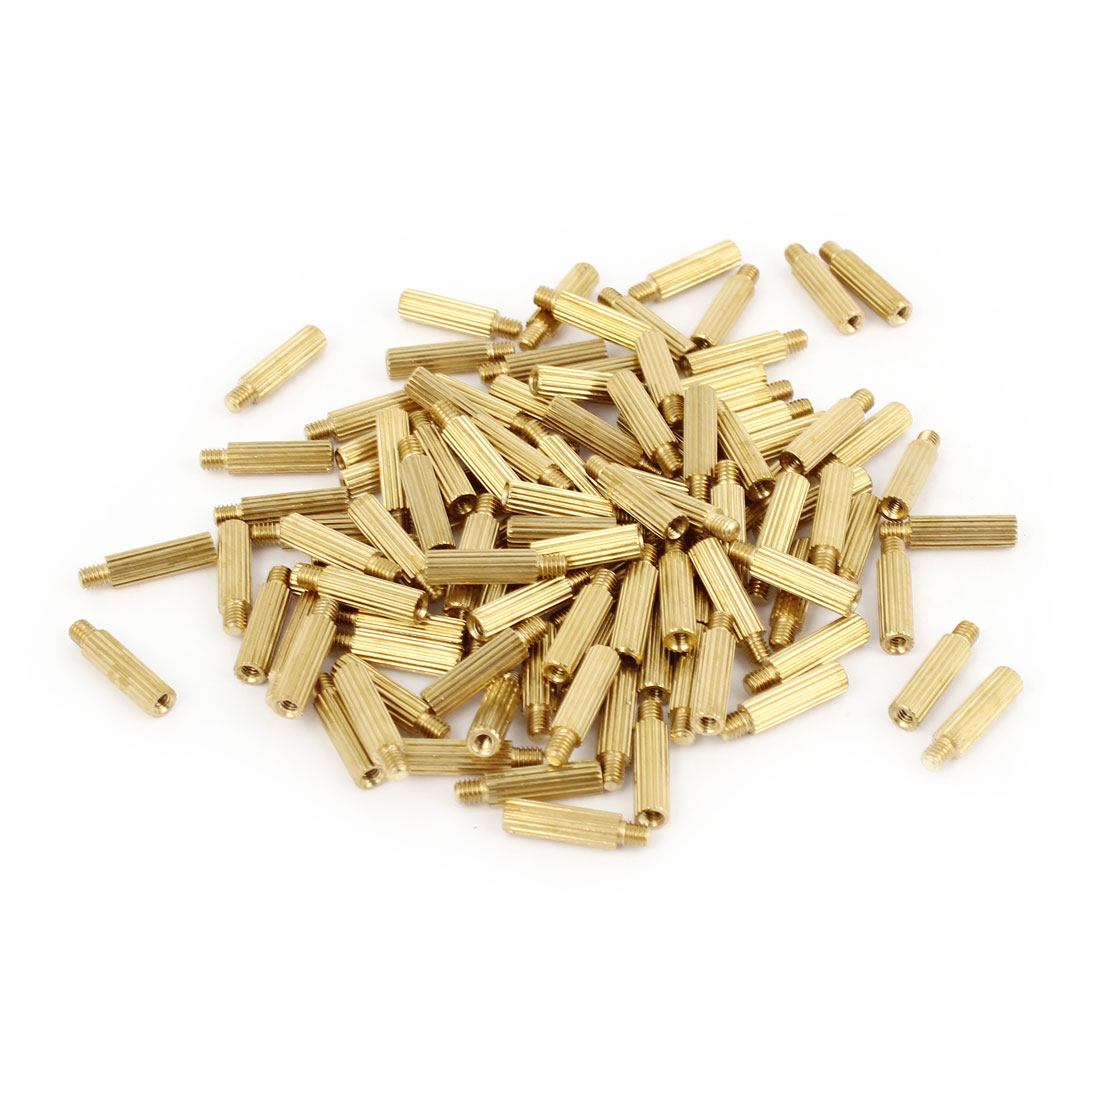 100Pcs Male to Female Thread Grooved Brass Pillars Standoff M2x11mm